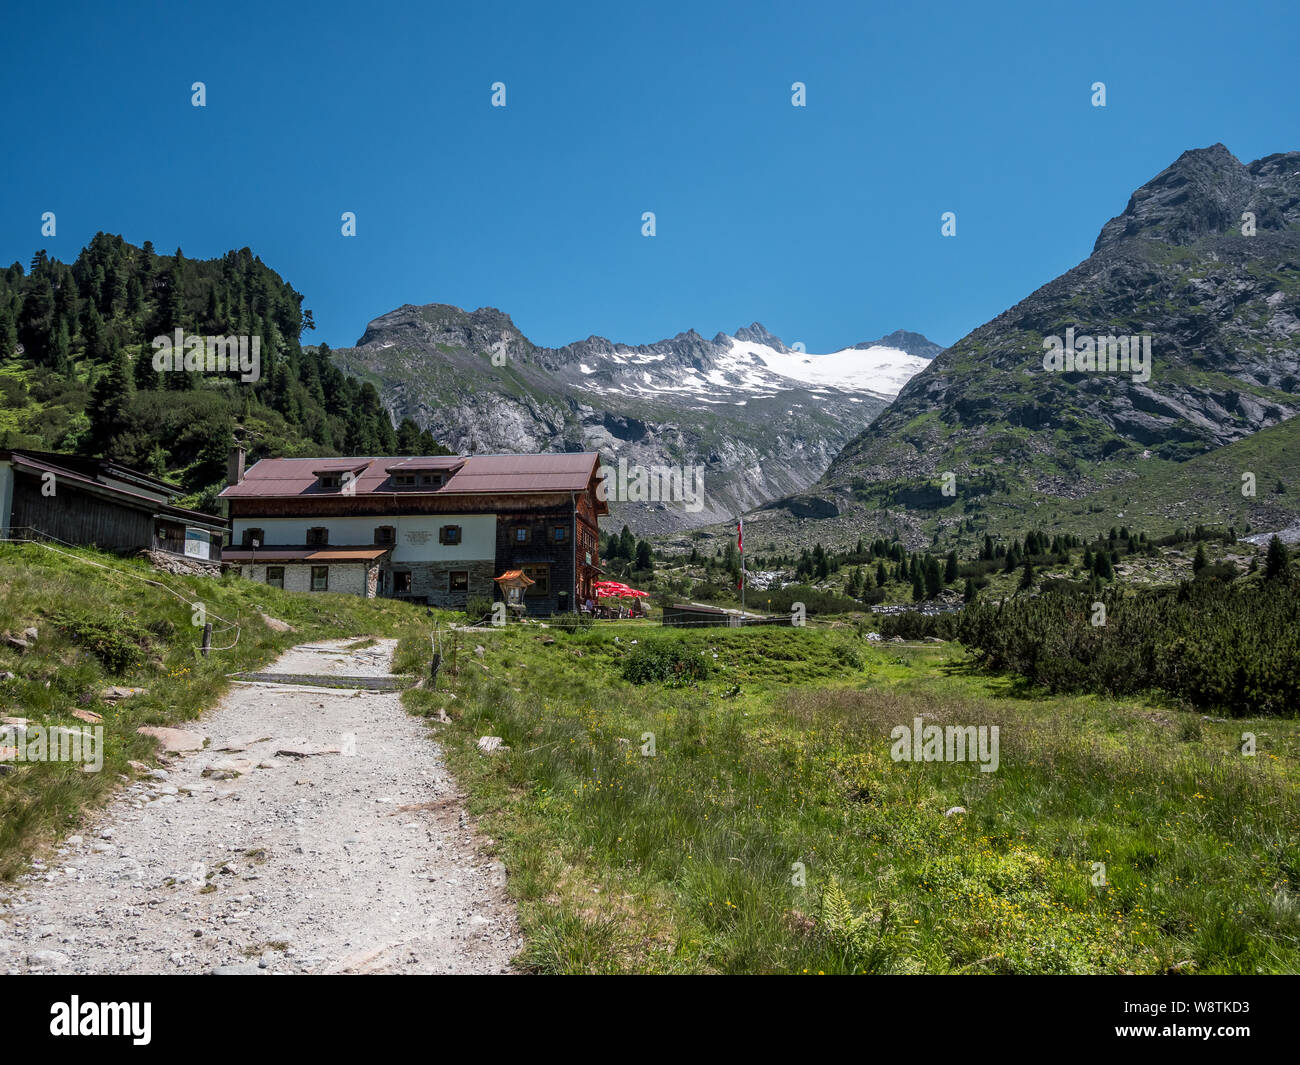 The Alpenrose hut mountain refuge in the Zemmgrund valley not far from the resort town of Mayrhofen in the Zillertal Alps of the Austrian Tirol Stock Photo